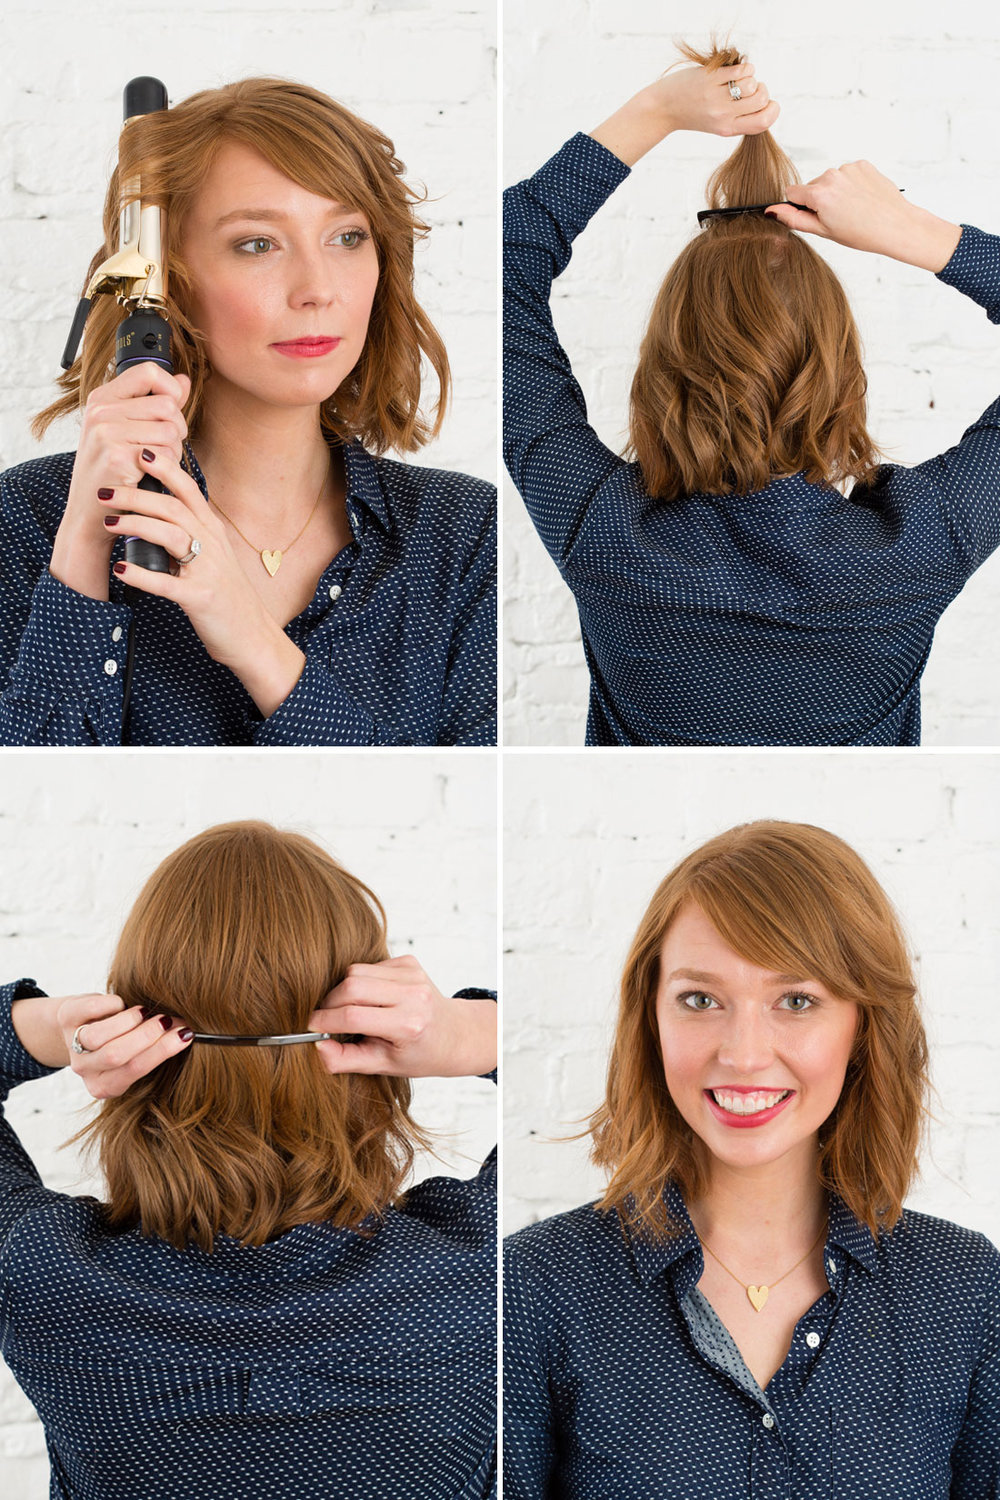 half-up-how-to-style-hair-accessories-clip-barrettes-emmastone-tutorial.jpg